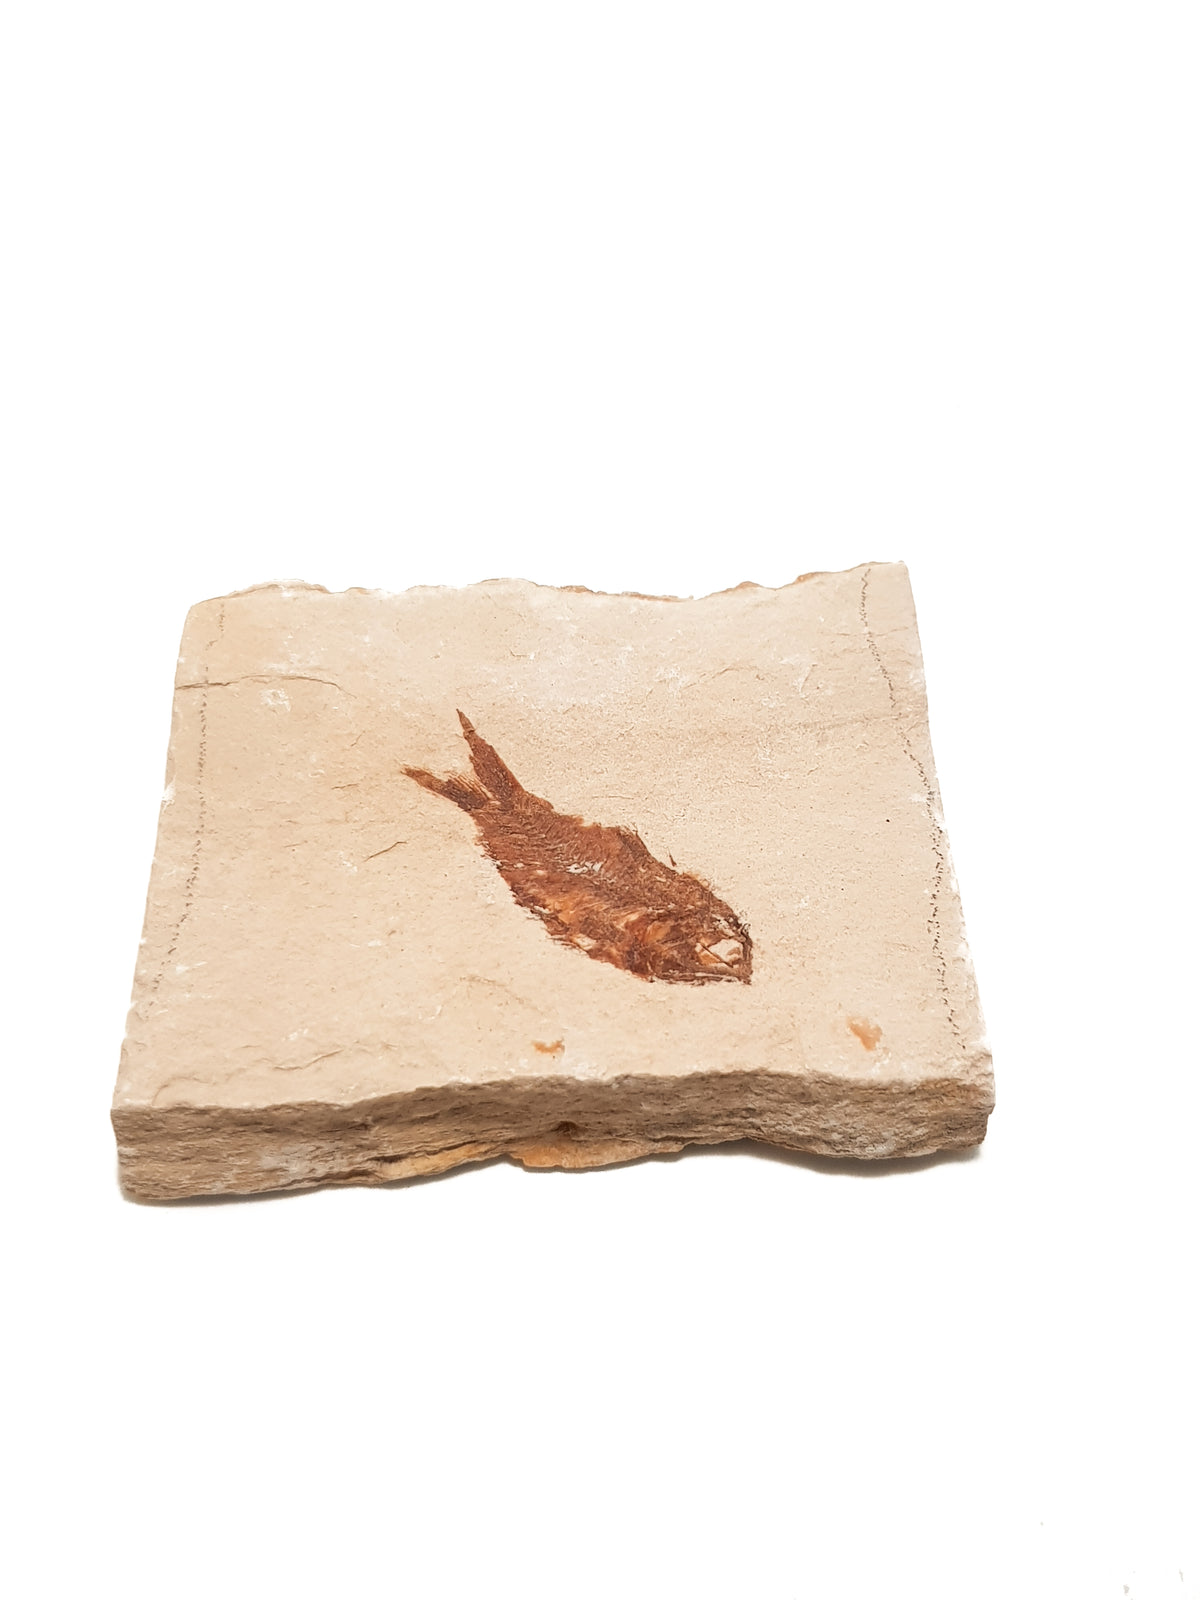 Fossil fish in limestone. The edges of the limestone are laminated. The fish is very complete, both the bones and preserved flesh are brown. Details of the back bone and the eye socket are clearly visible. There are no signs of repair